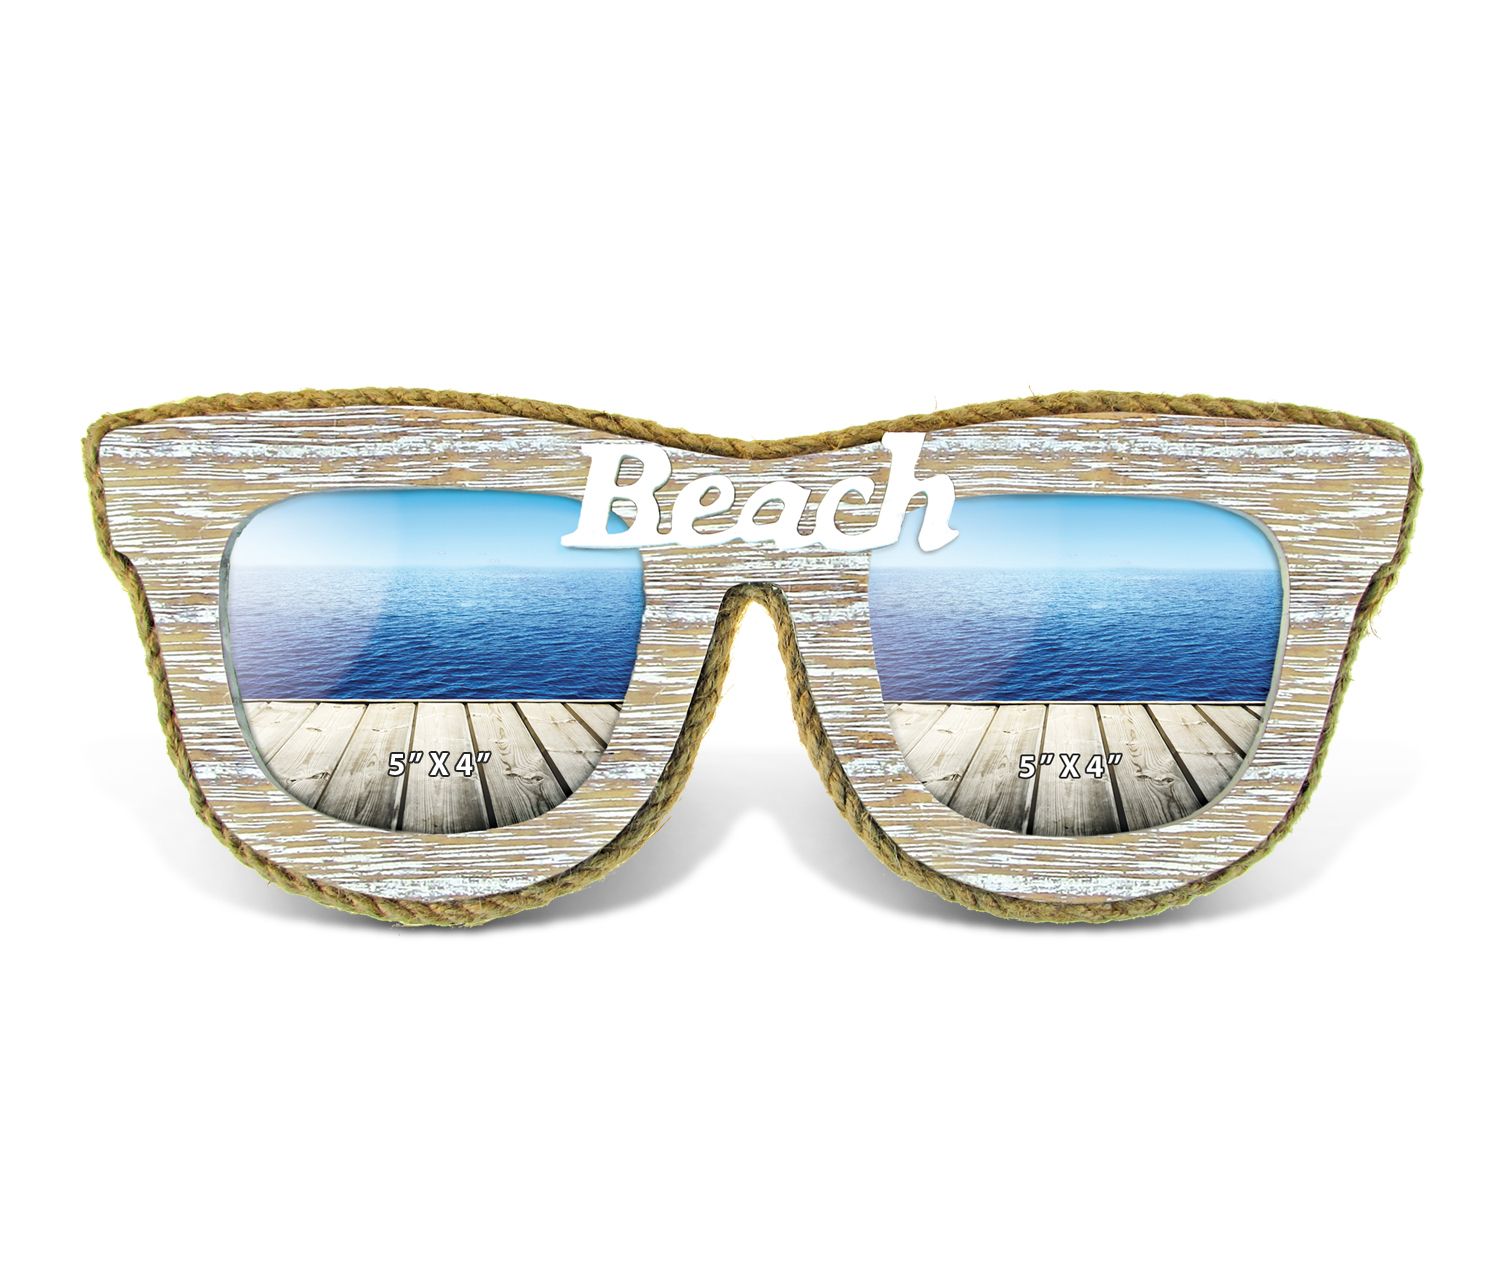 Nautical Decor VINTAGE Beach Sunglass Frames